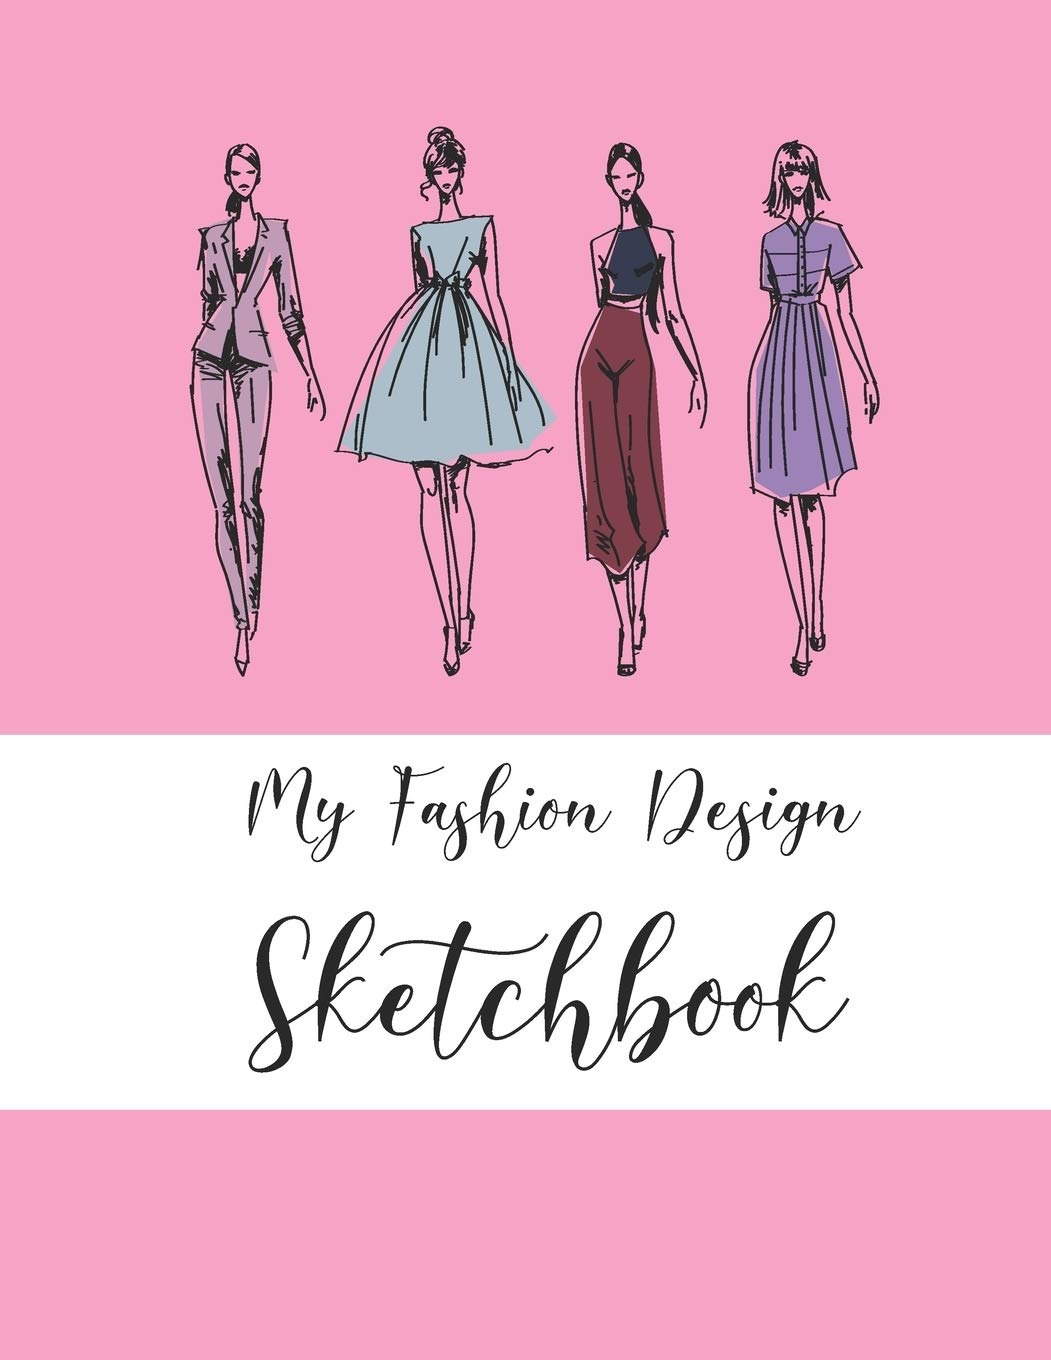 Amazon Com My Fashion Design Sketchbook Novelty Gifts Book For Fashion Designers For Women Fashion Figure Templates Blank Fashion Croquis Notebook To Draw Design Ideas And Build Your Portfolio Fast